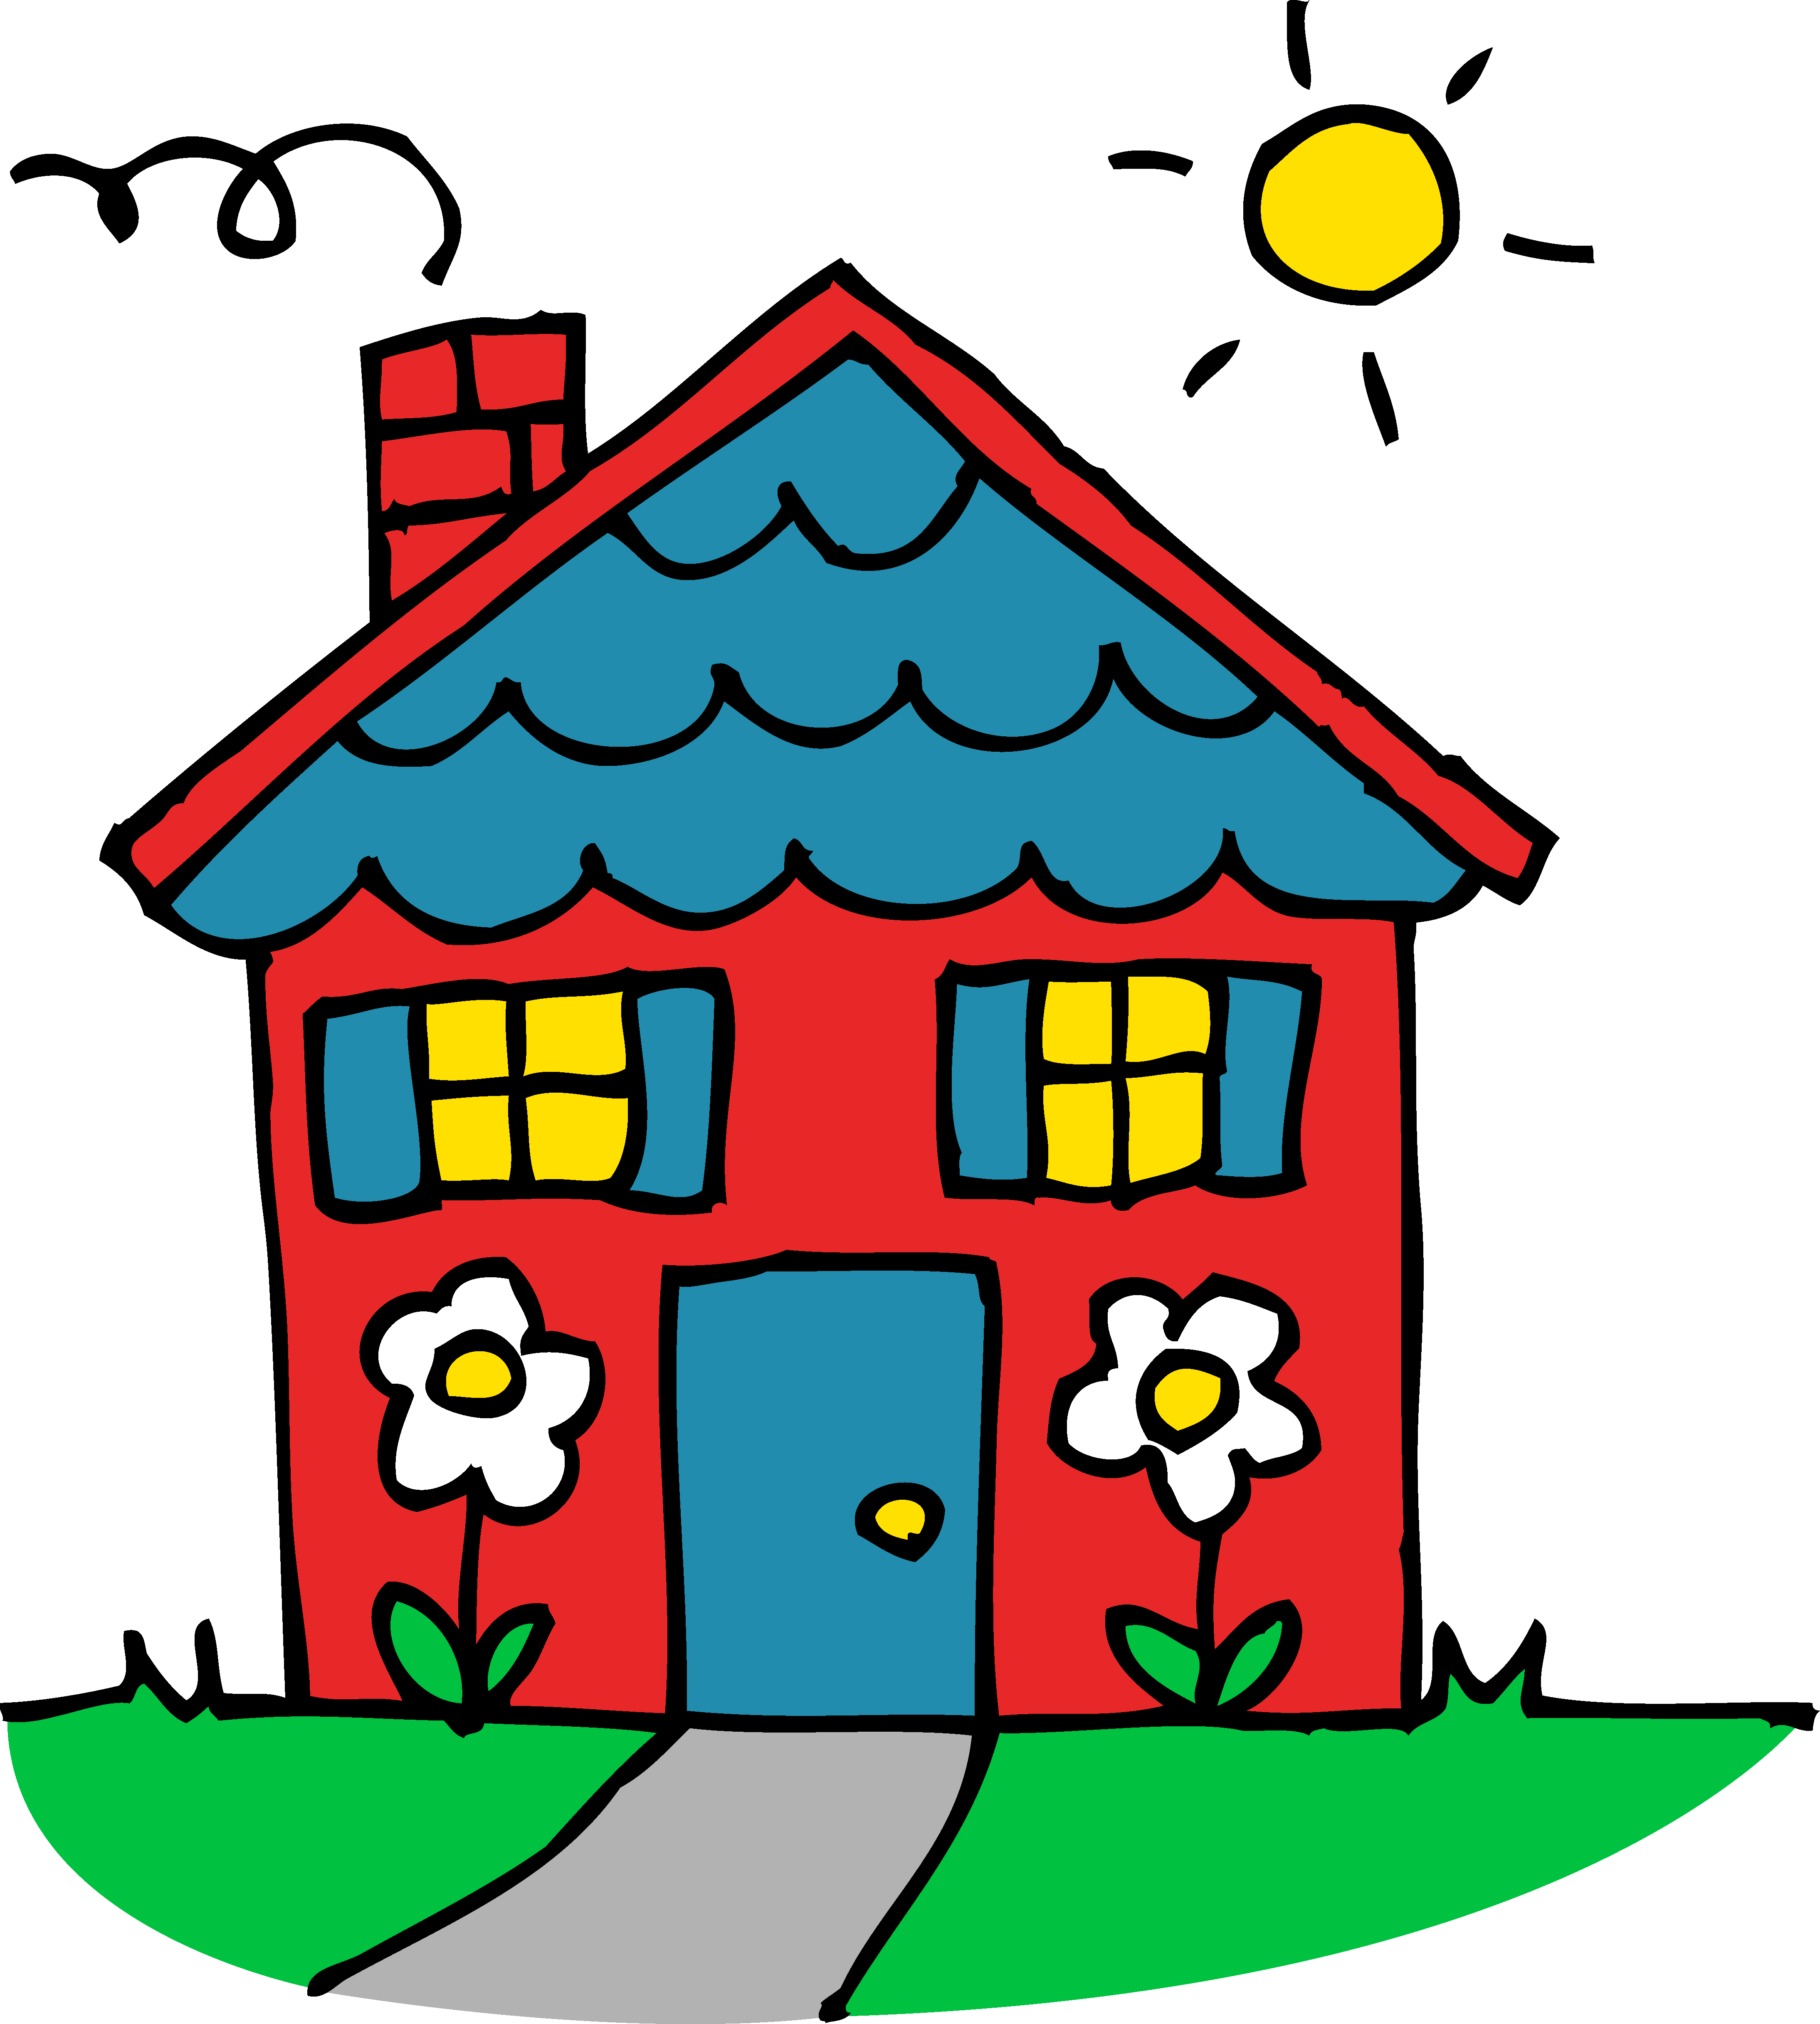 image free library House clipart. Cute red and blue.